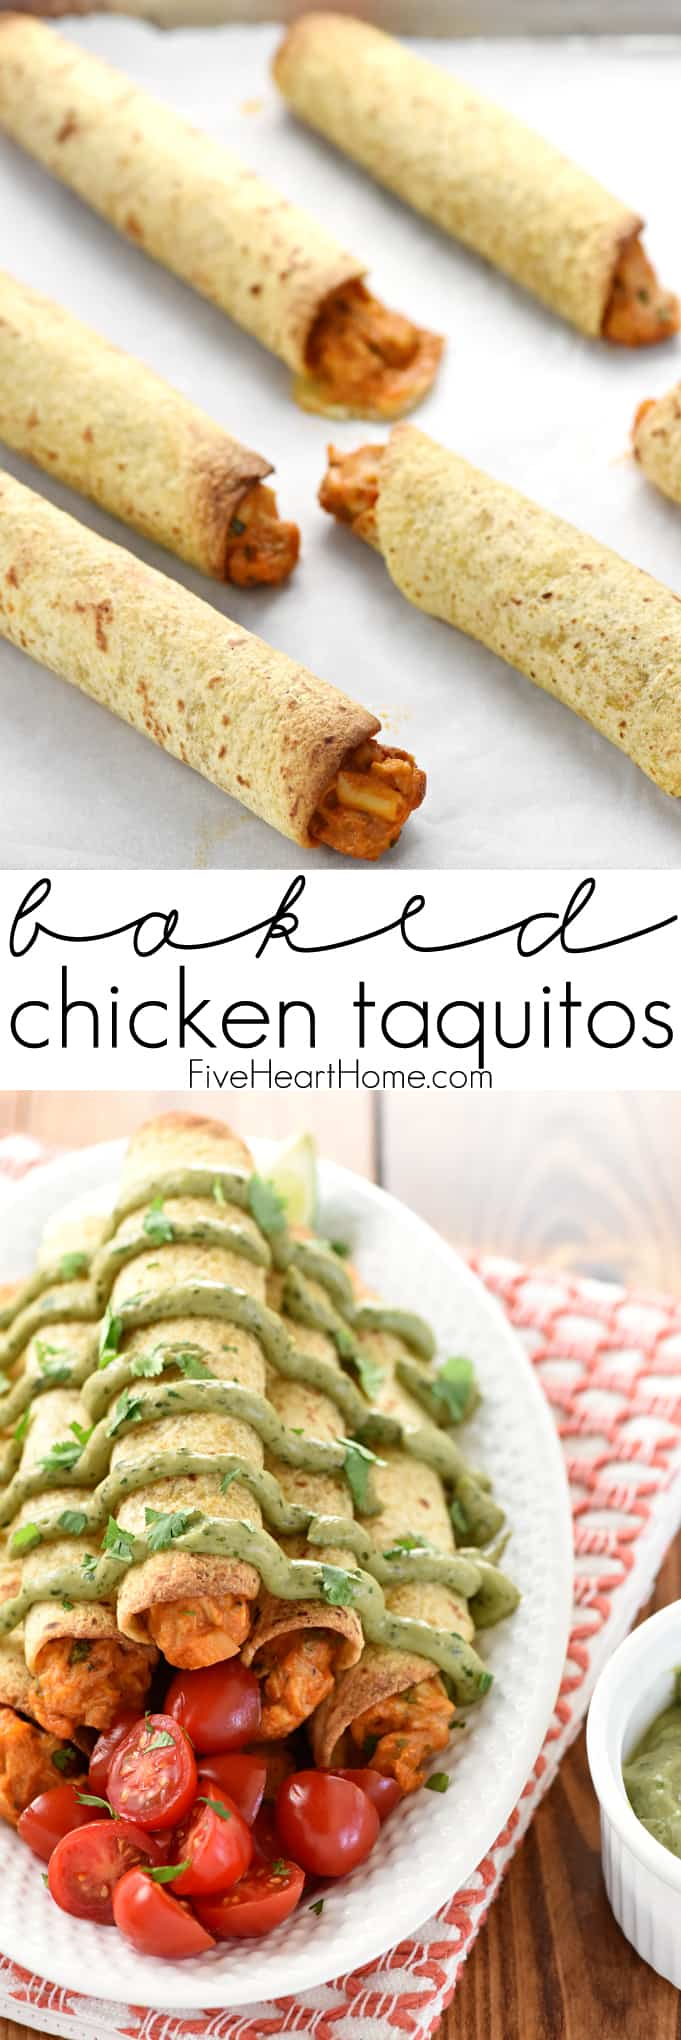 Baked Chicken Taquitos with Avocado Cilantro Dipping Sauce Collage with Text Overlay